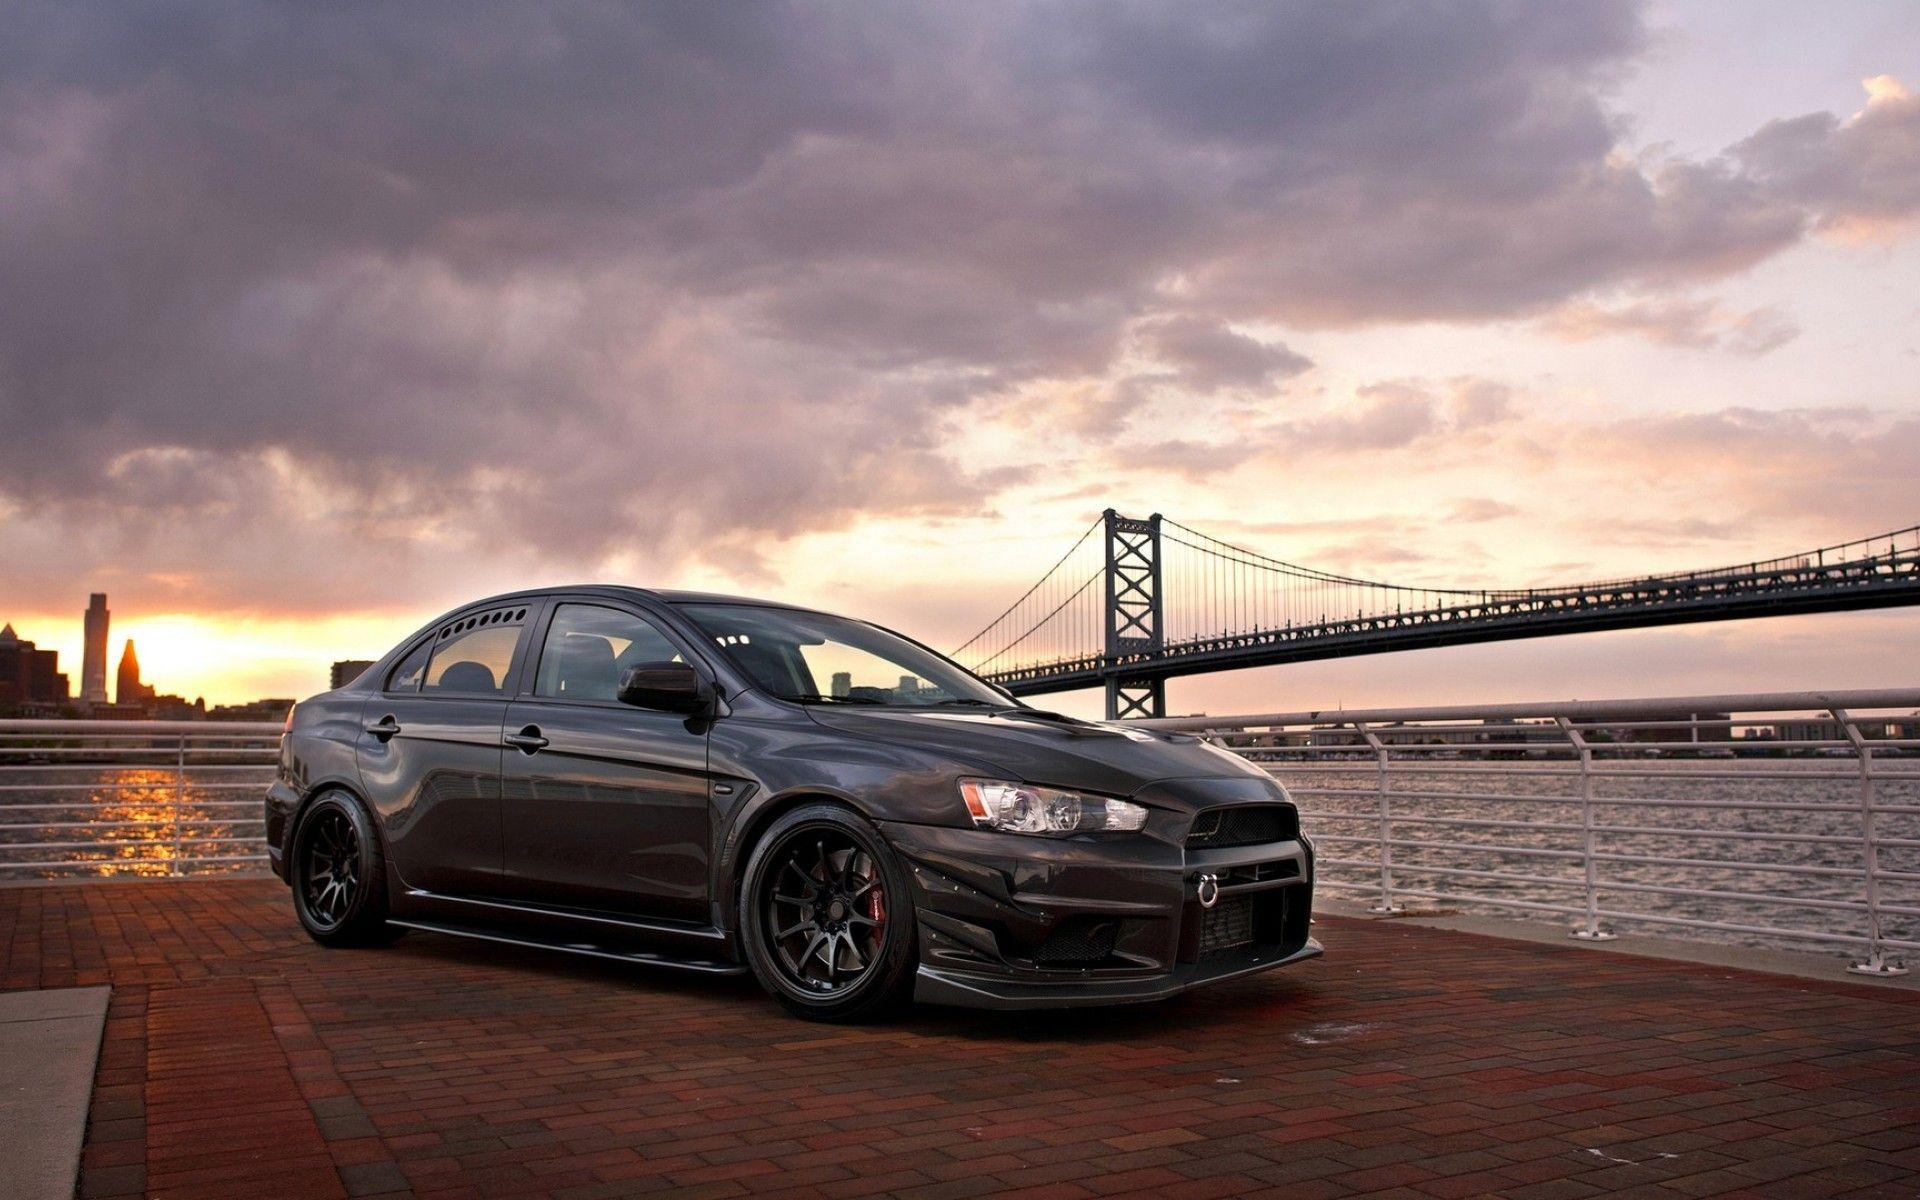 Wallpapers : sports car, Mitsubishi Lancer, Stance, Mitsubishi Lancer